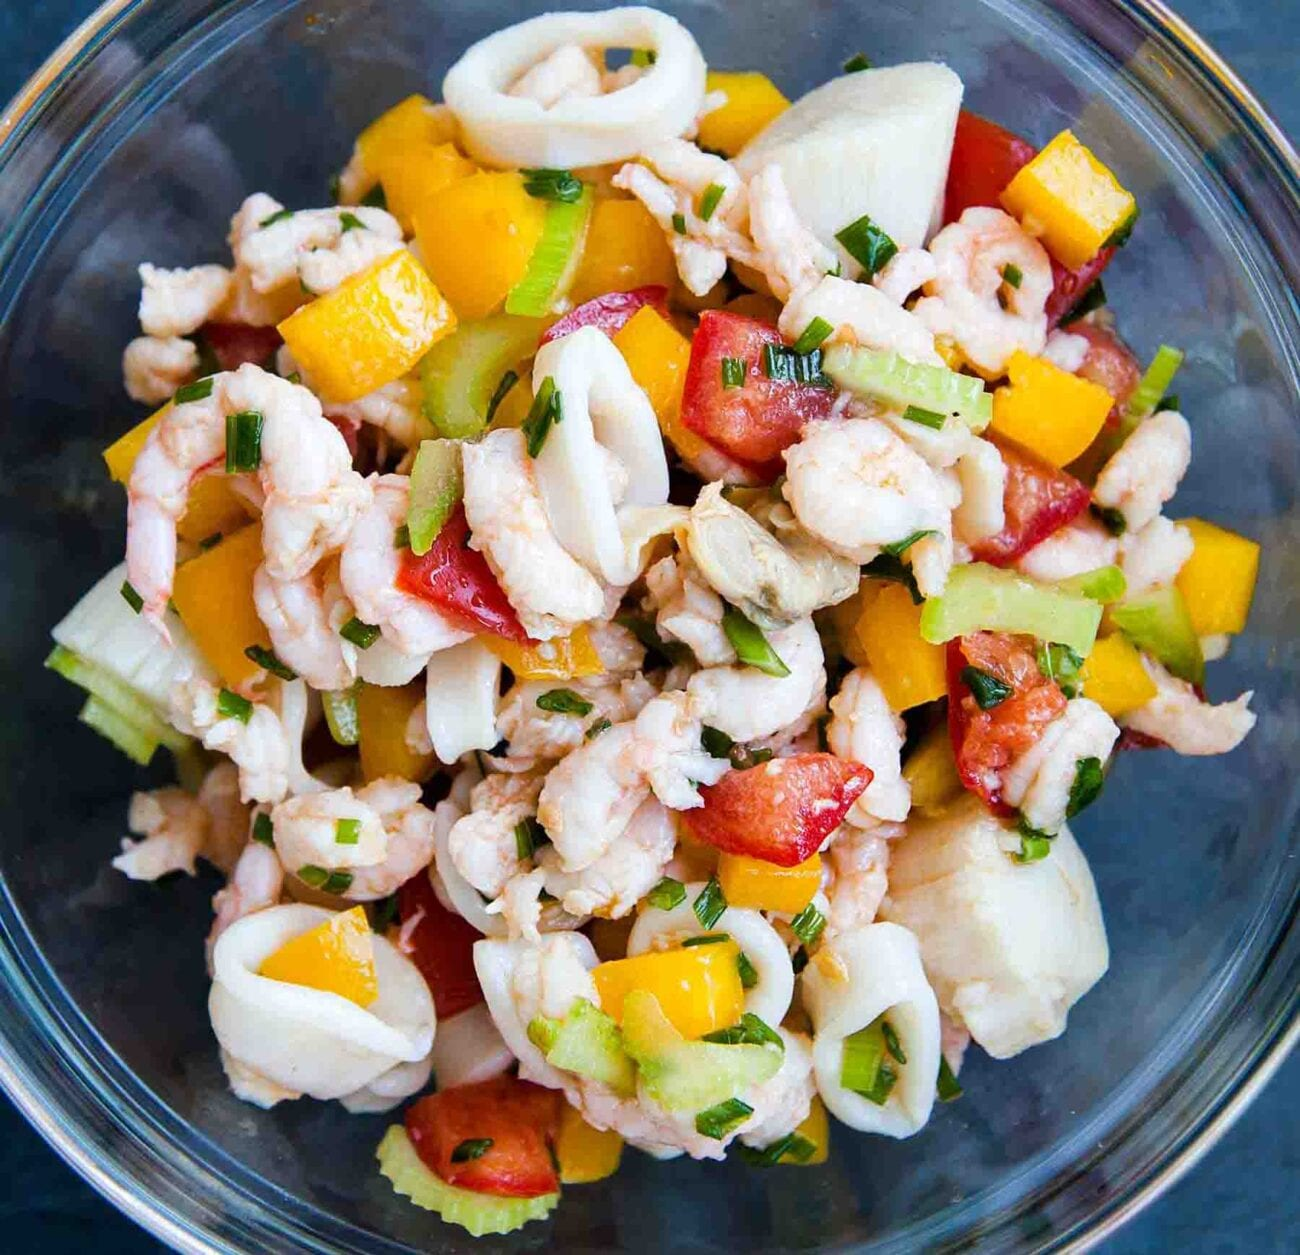 Looking to impress everyone this Christmas? Try this seafood salad recipe that will make everyone want seconds.